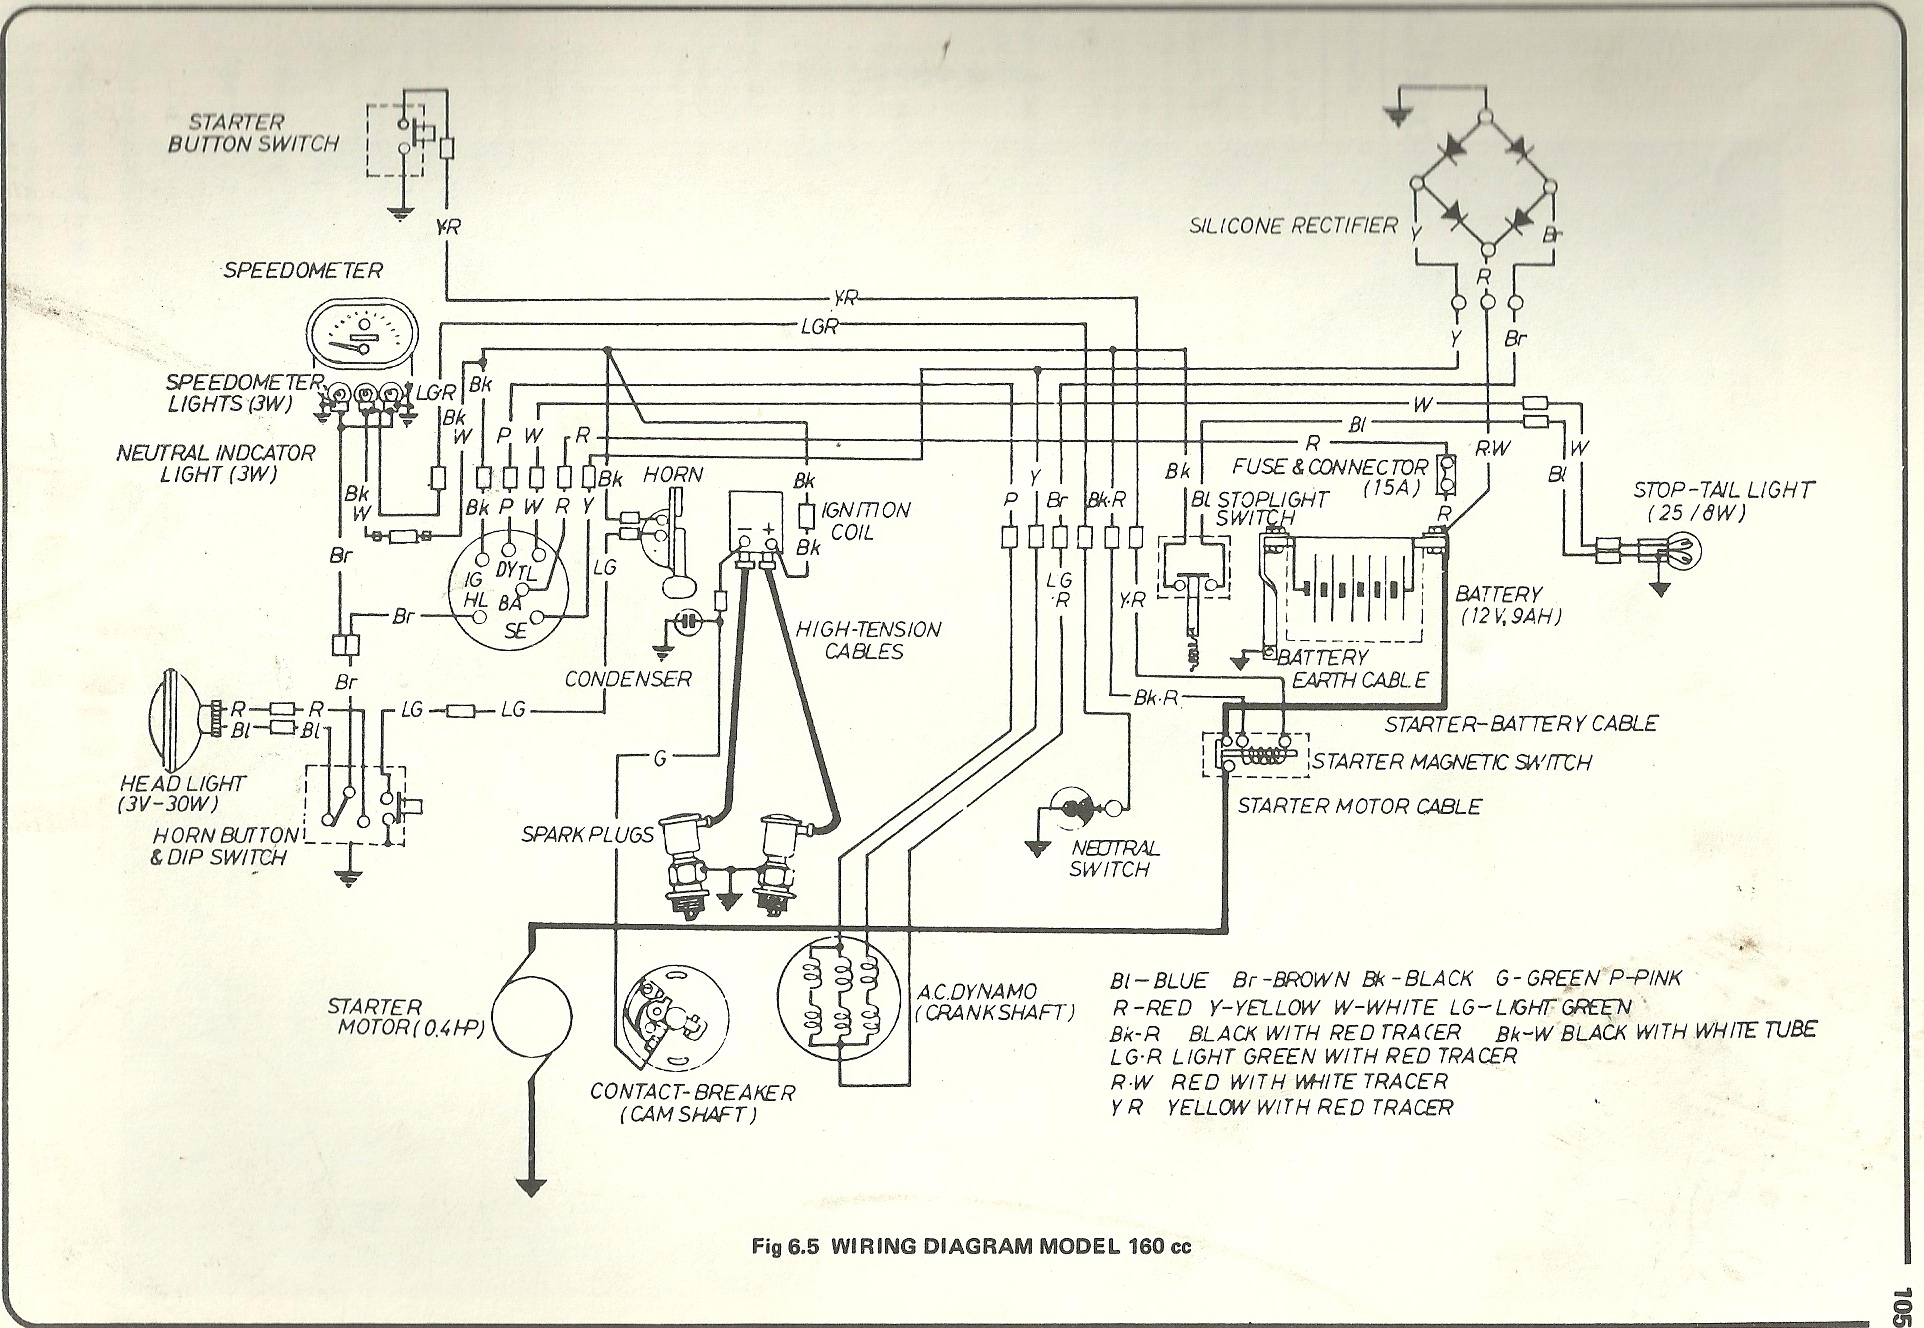 Gl1800 Audio Wiring Diagram | Online Wiring Diagram on motorcycle wiring diagrams wiring, 2001 honda shadow wiring, 1987 honda shadow ignition wiring,